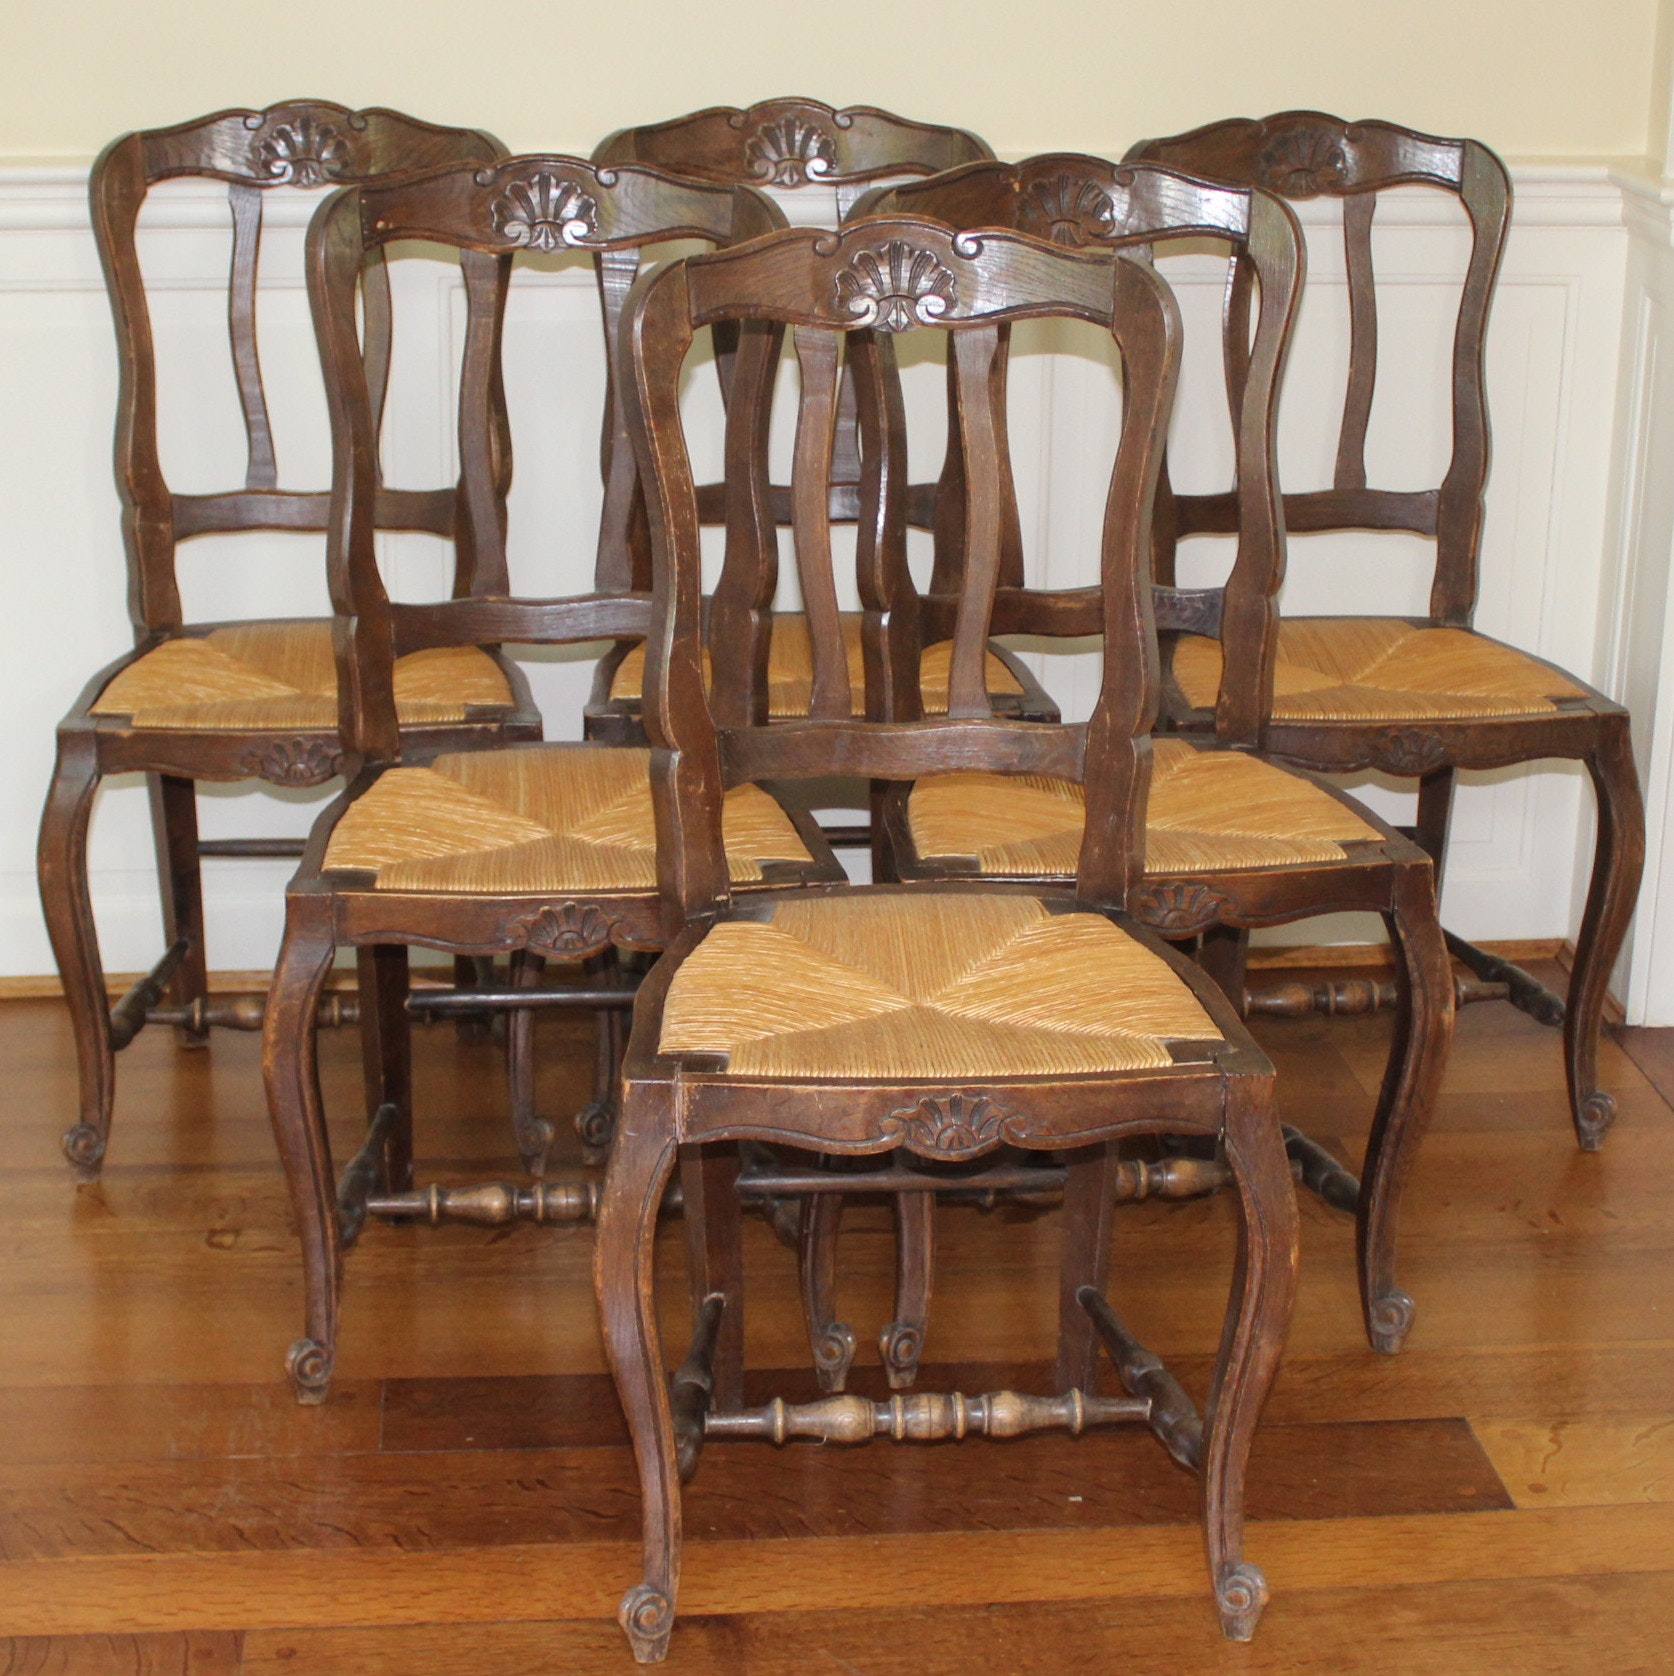 Reproduction French Provincial Dining Chairs ... & Reproduction French Provincial Dining Chairs : EBTH